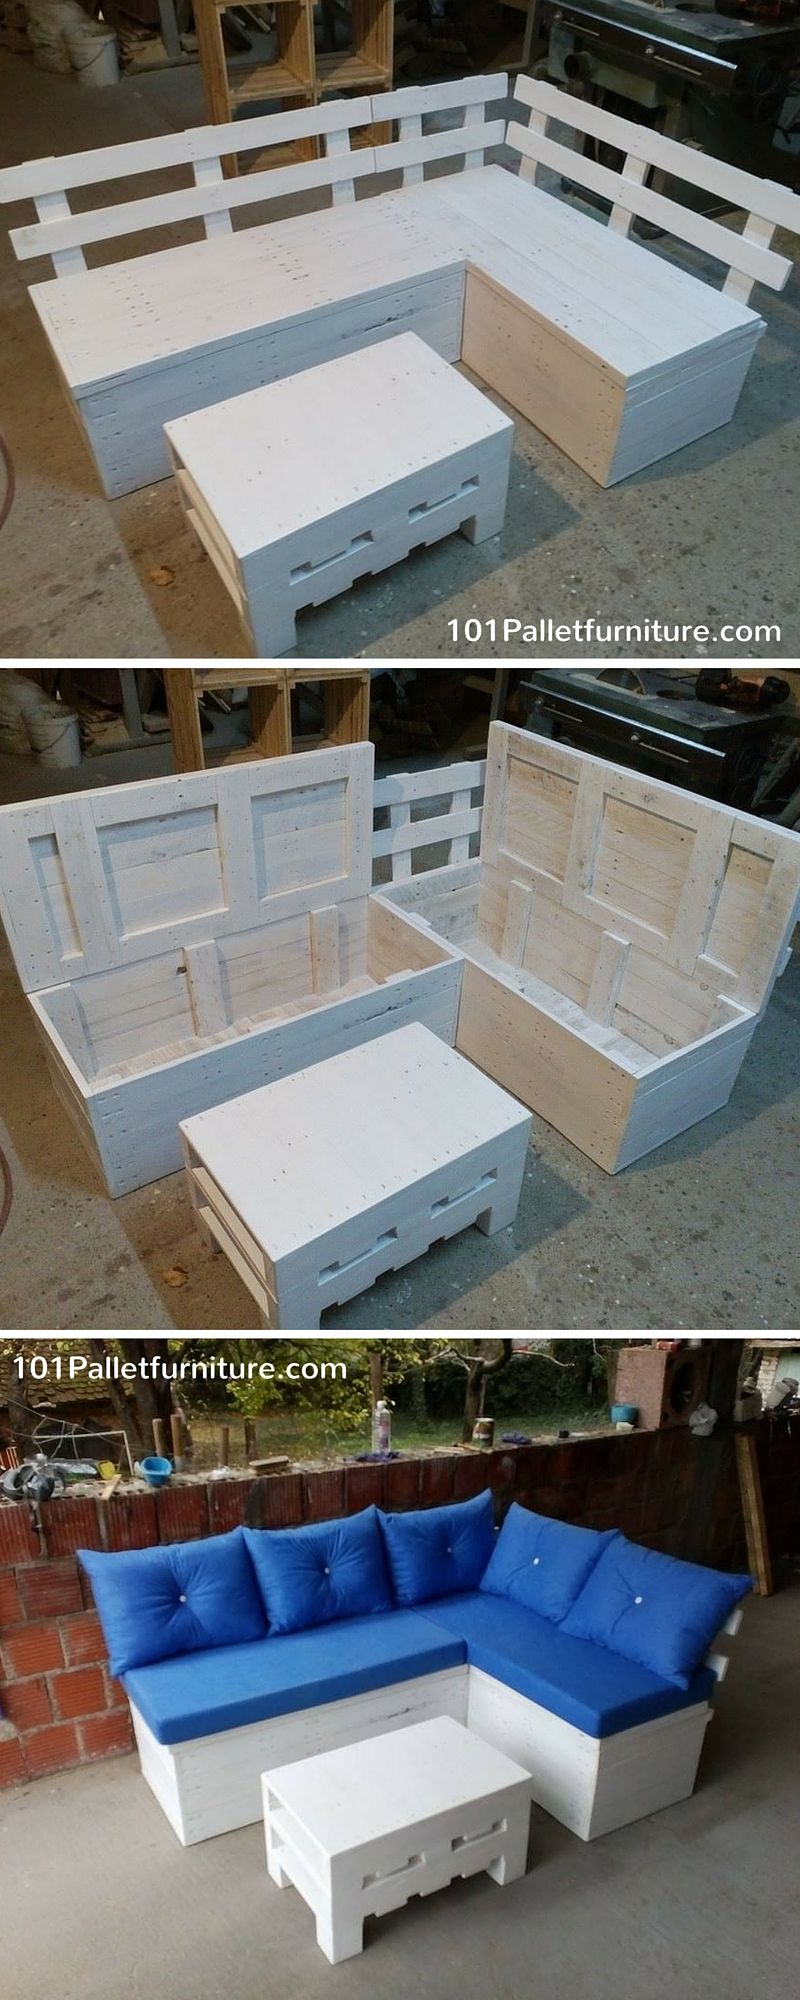 Pallet Sectional Sofa With Additional Storage Space   101 Pallet Furniture